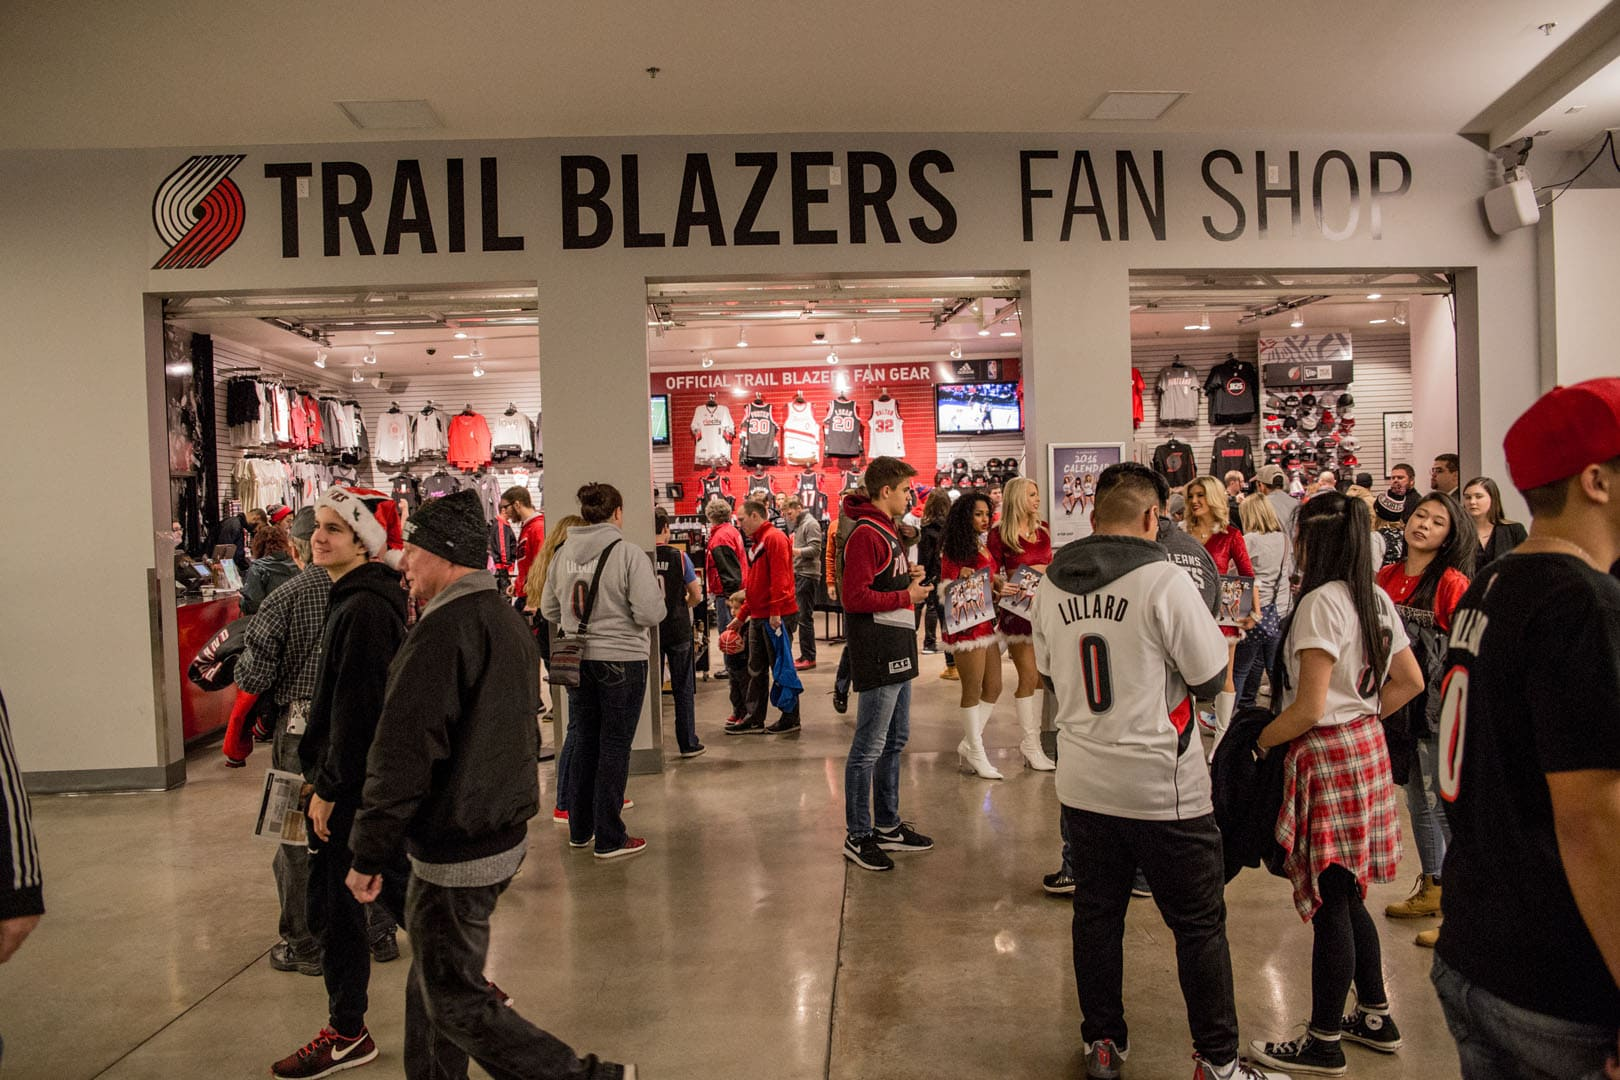 Why are the trail blazers called the trail blazers?